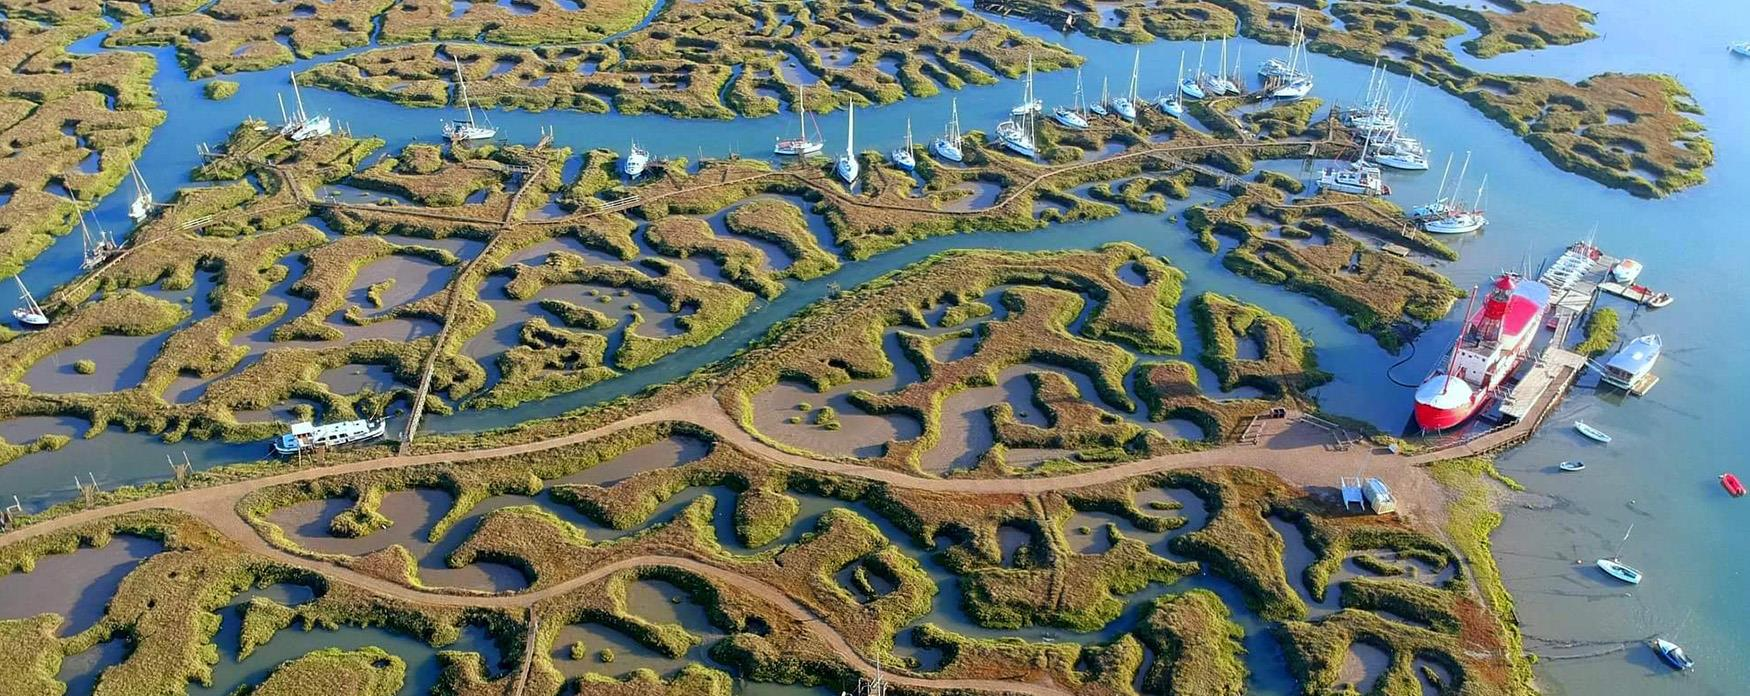 An aerial shot of Tollesbury marshes and boats